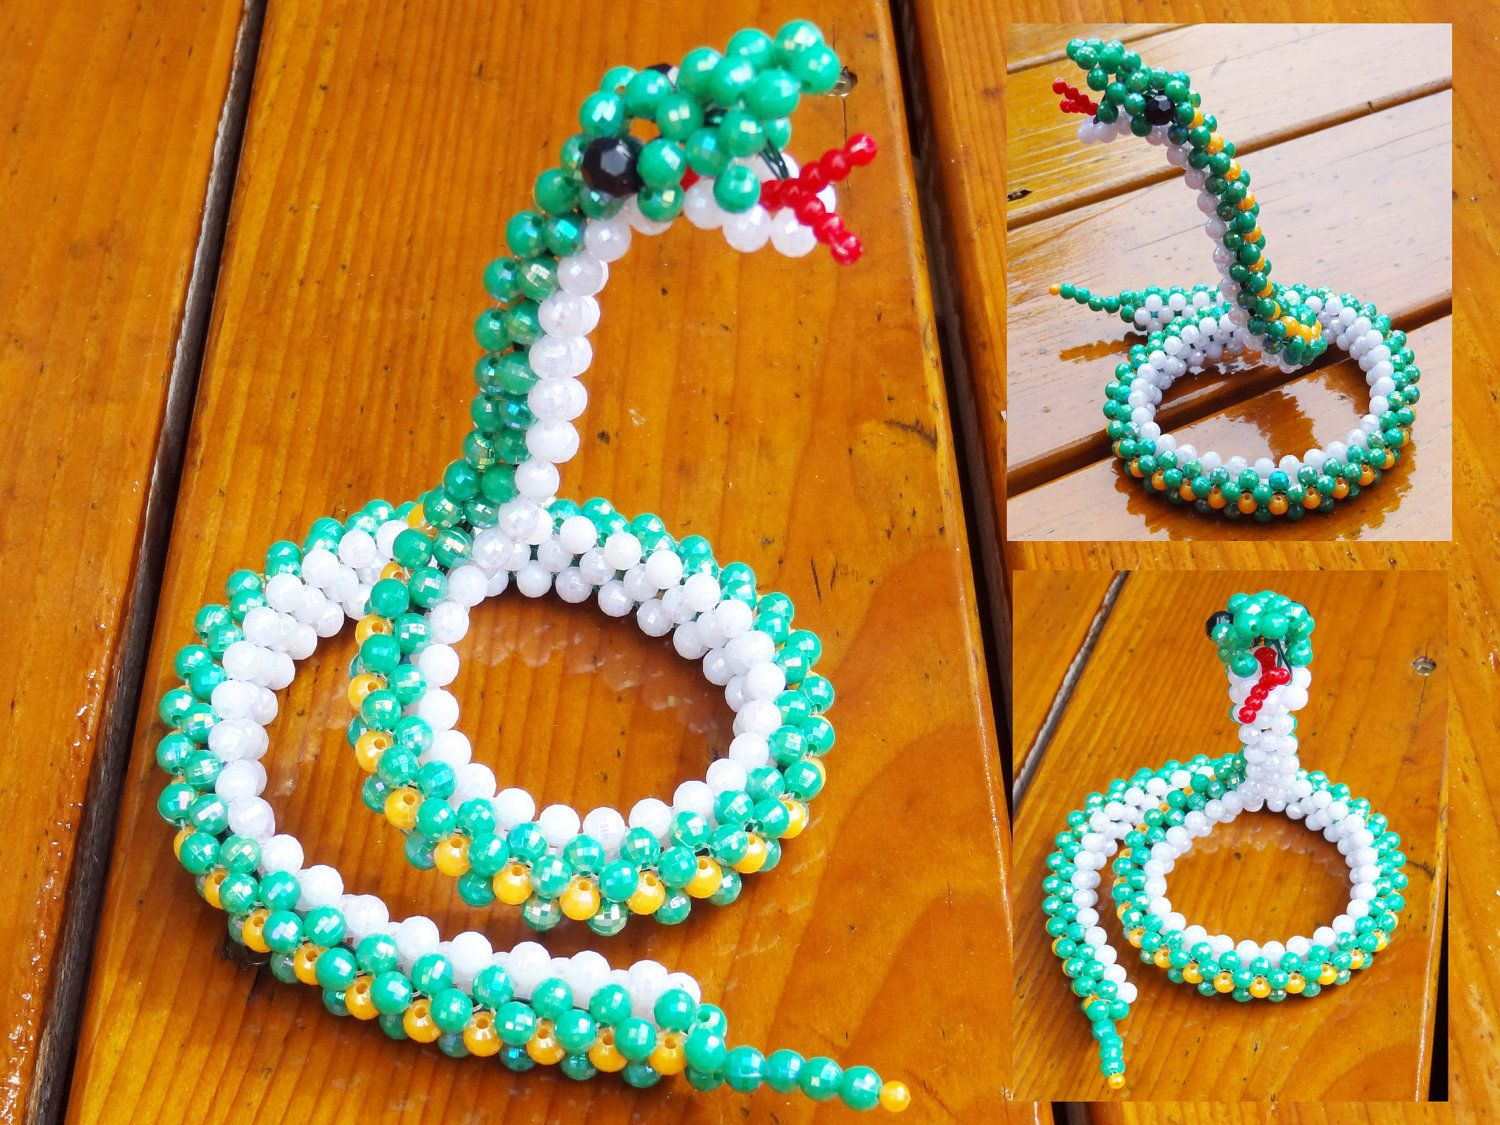 Beaded snake | Beading jewelry projects, Beaded crafts ...